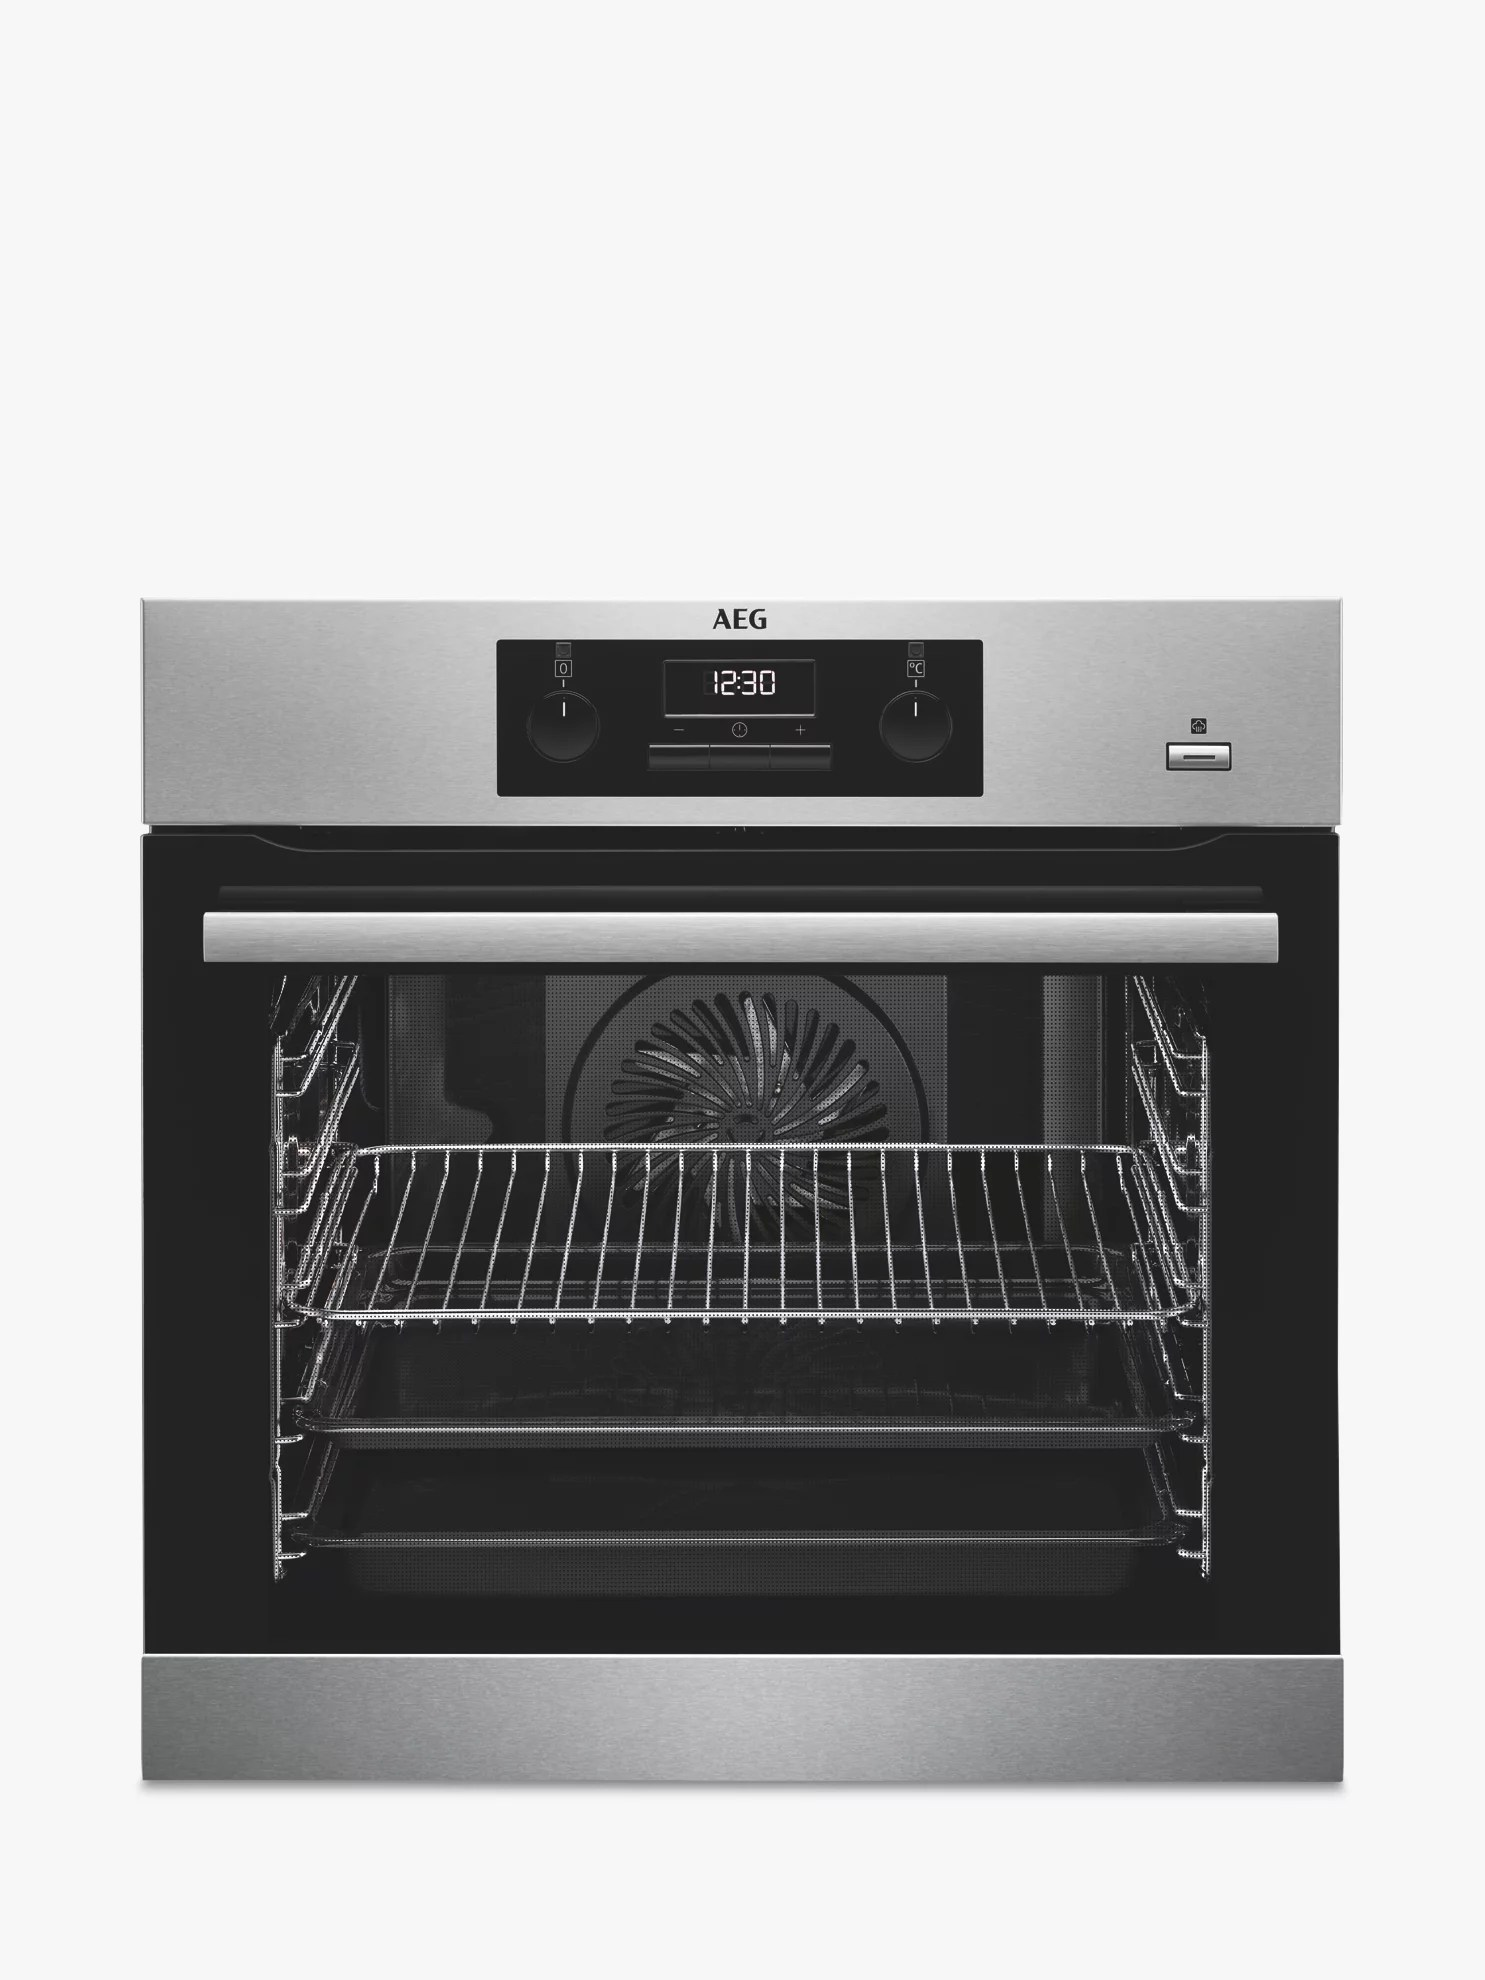 Aeg Online Shop Aeg Bes351010m Built In Multifunction Single Oven Stainless Steel